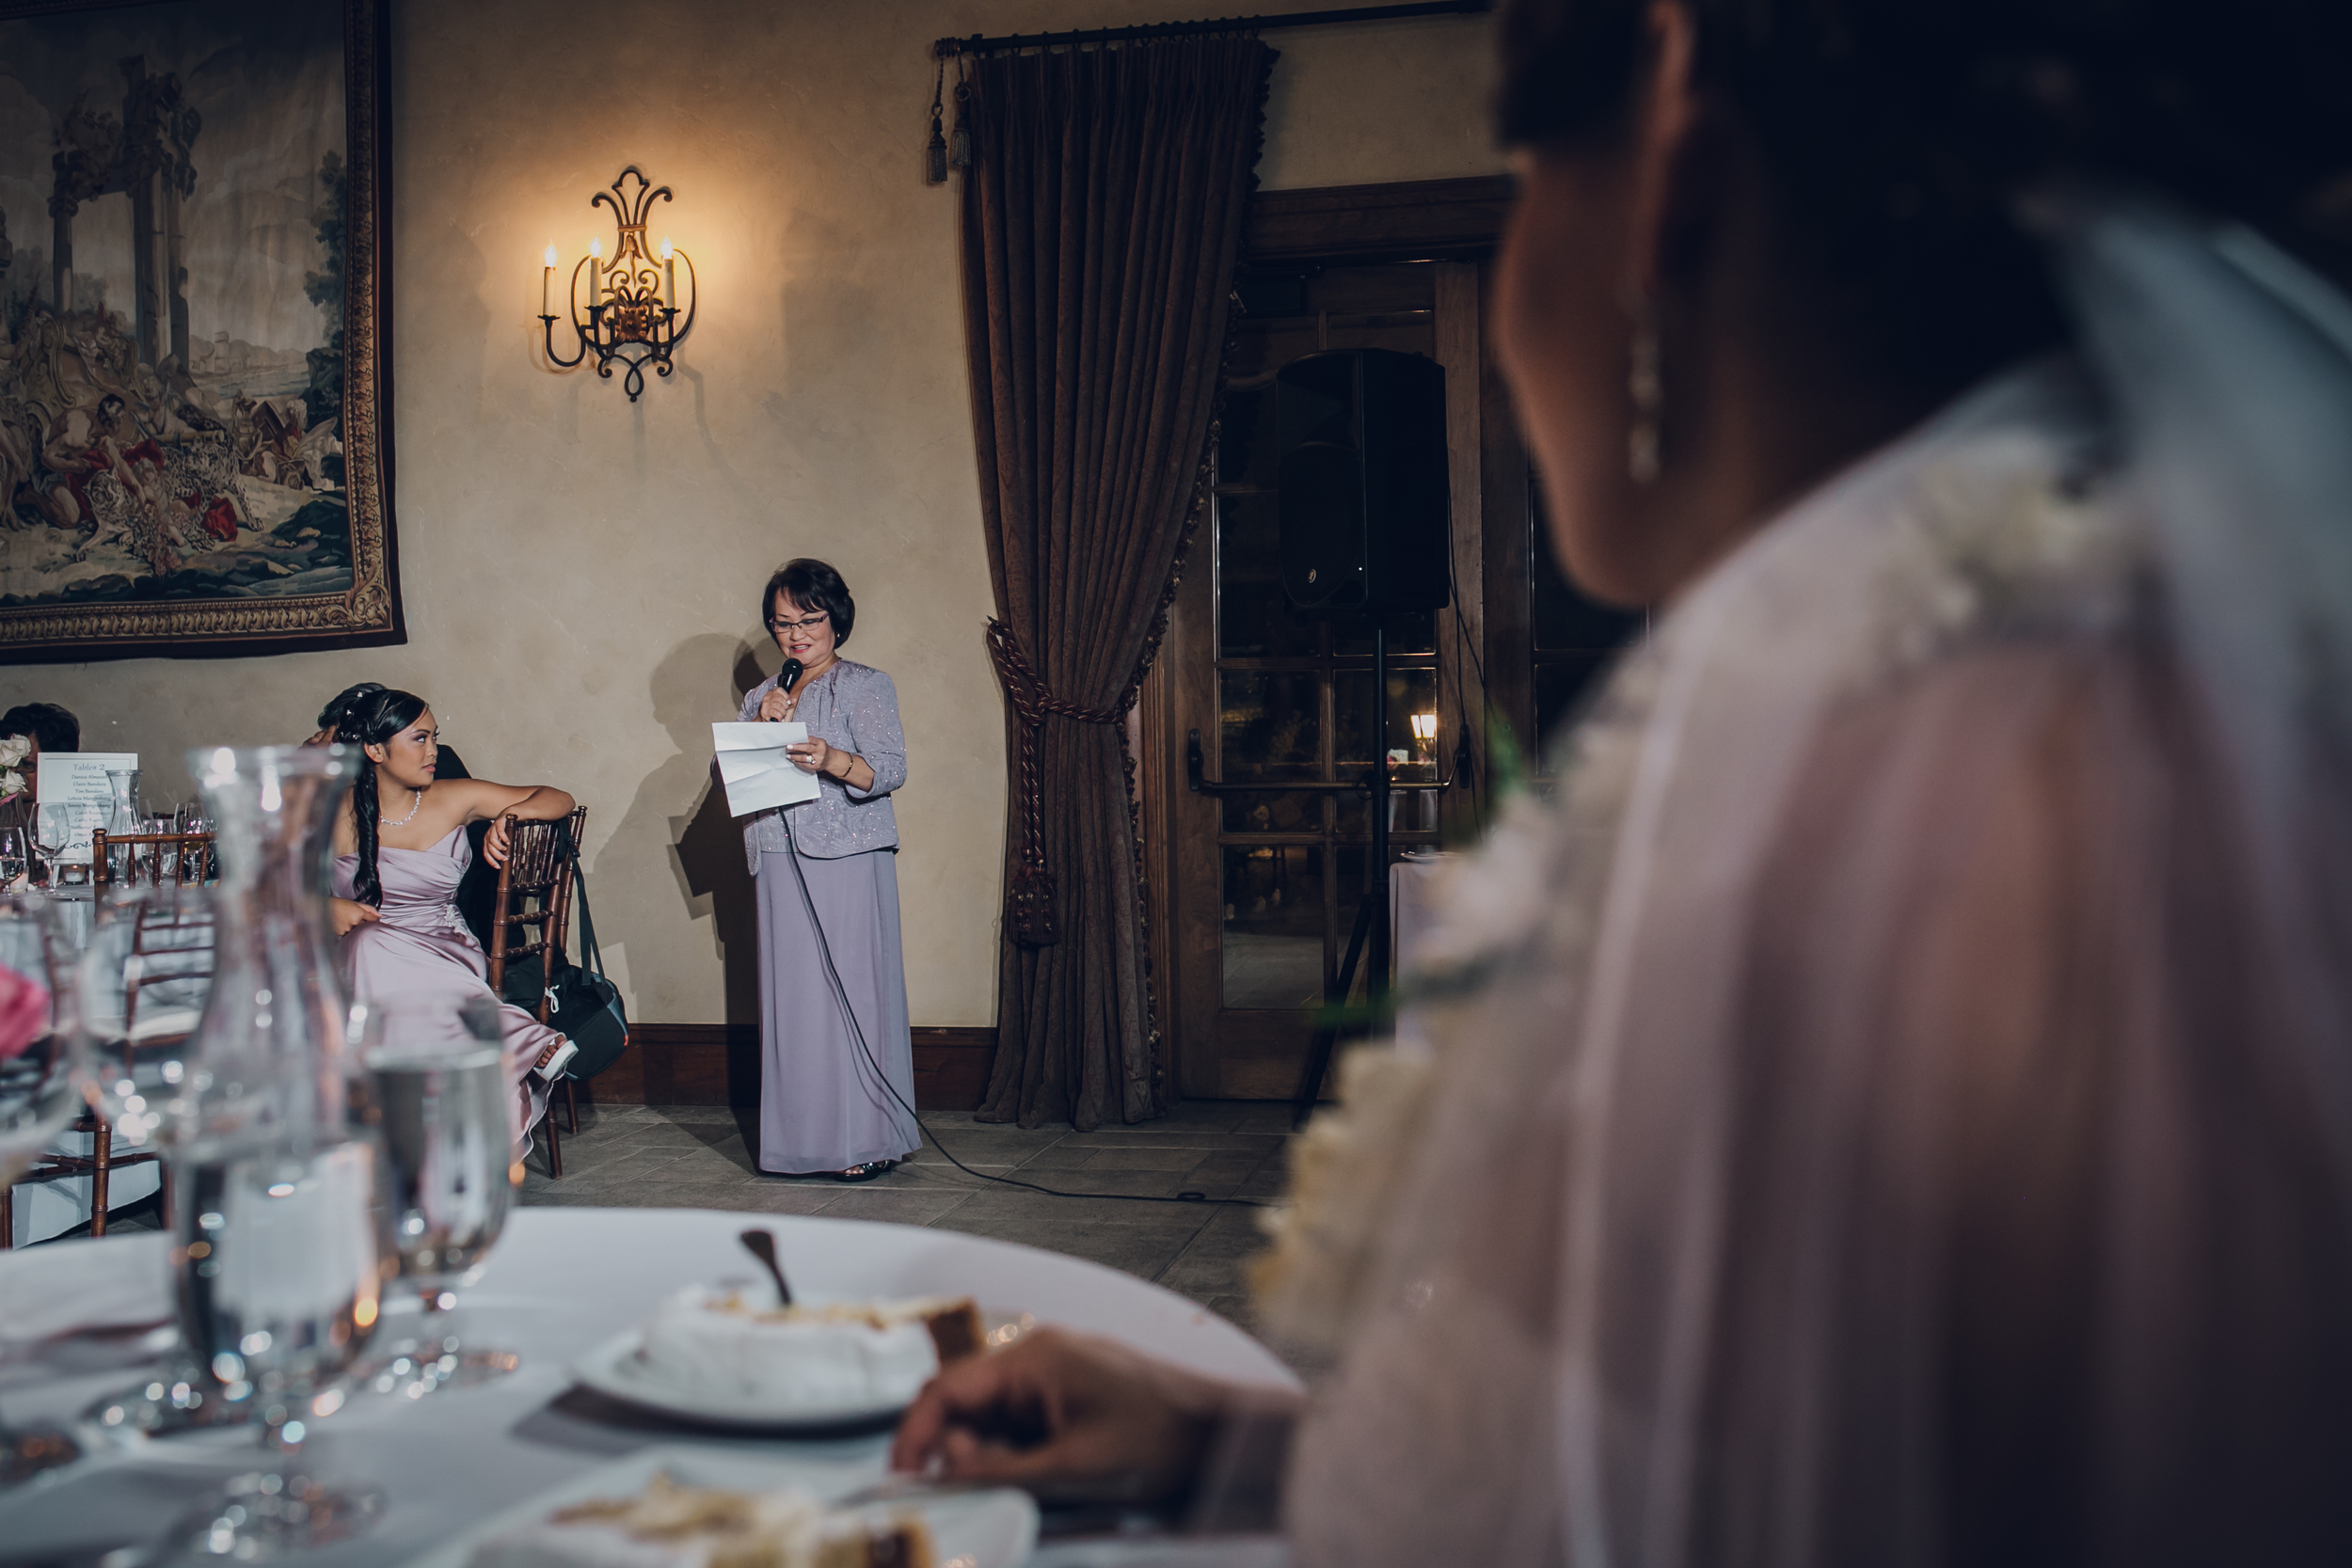 Shiela + Lester's Wedding 9-30-15 1345.jpg